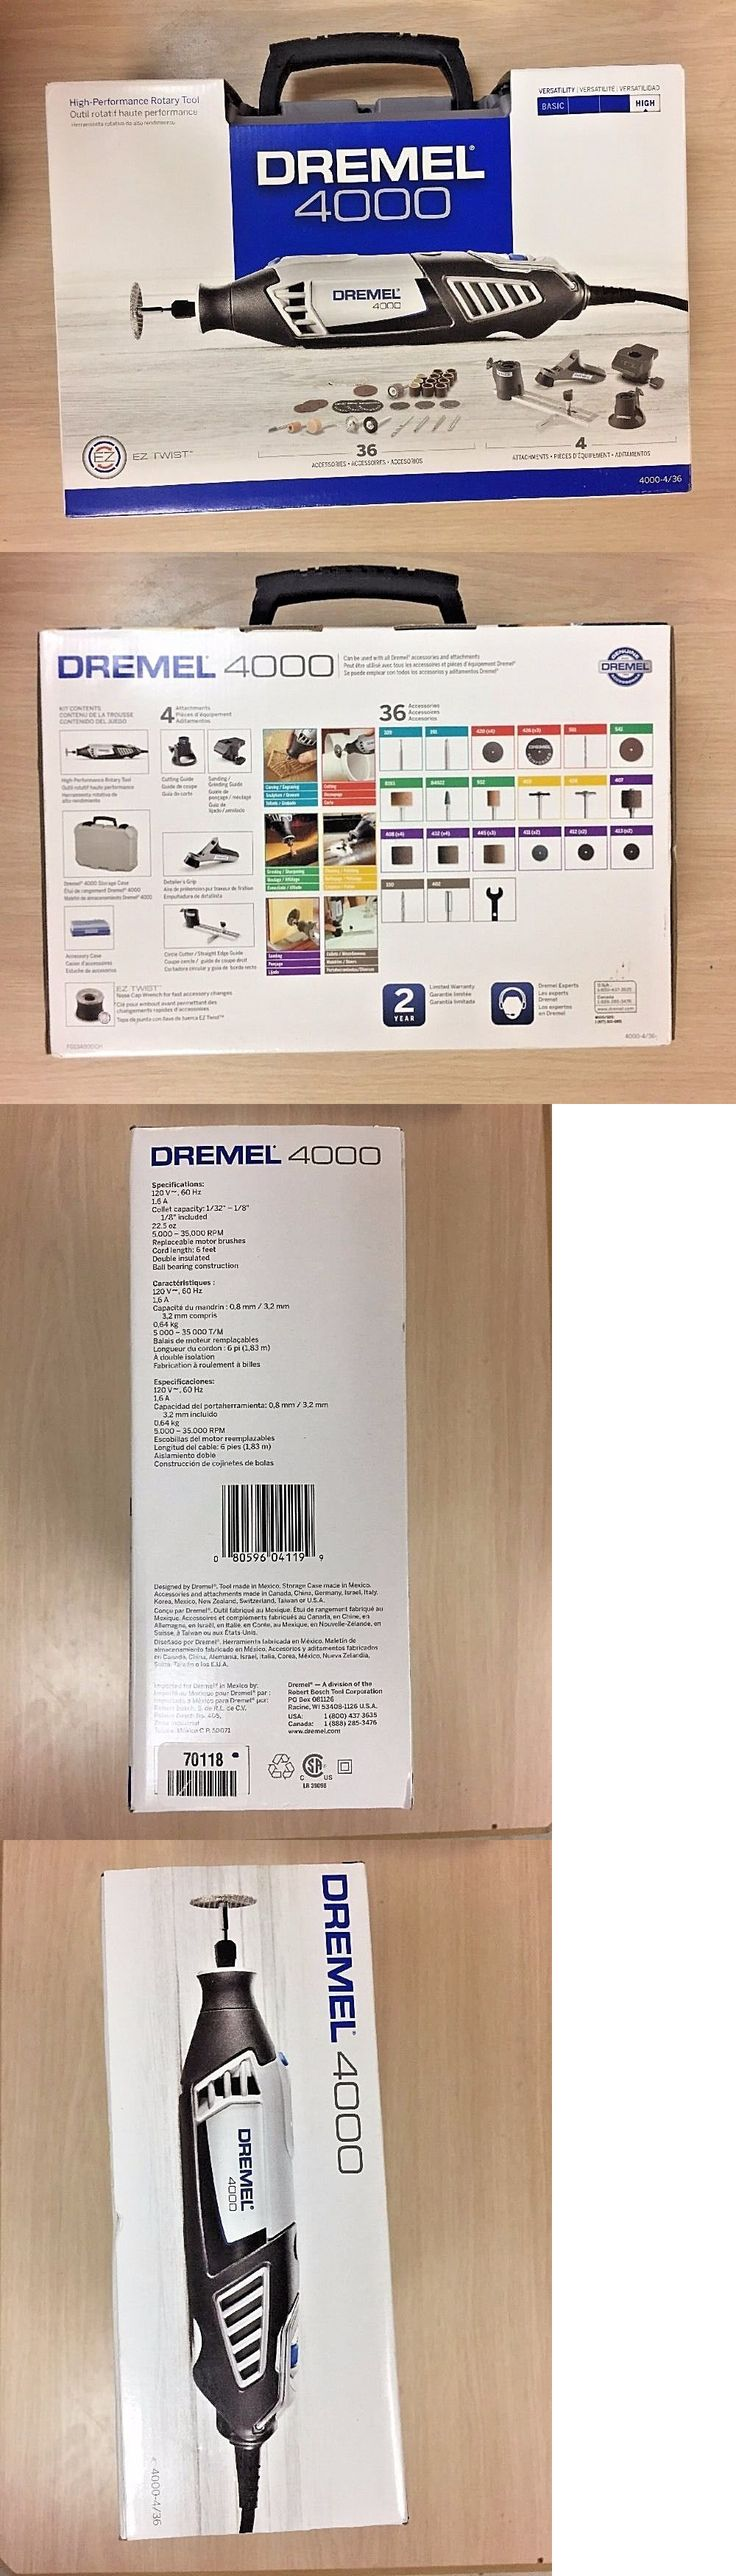 Other Power Grinders and Accs 20778: New Dremel High Performance Rotary Tool Kit 4000. 4 Attachments, 36 Accessories -> BUY IT NOW ONLY: $87.99 on eBay!